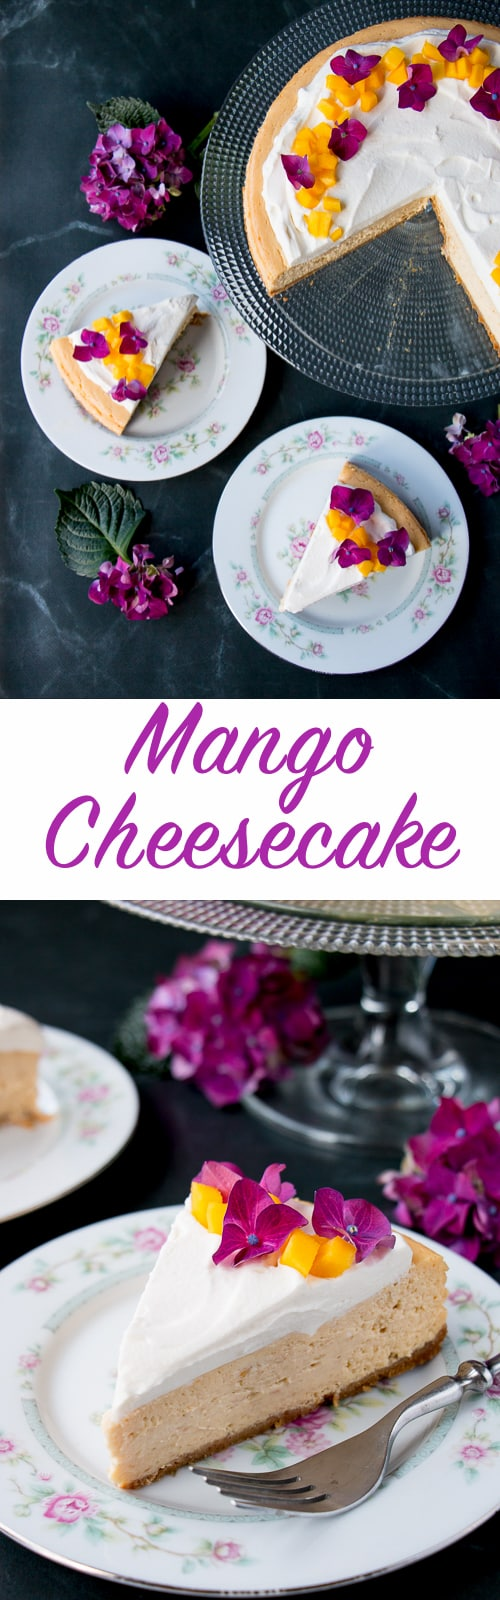 A soft and silky cheesecake with a light tropical flavor of fresh mangoes.